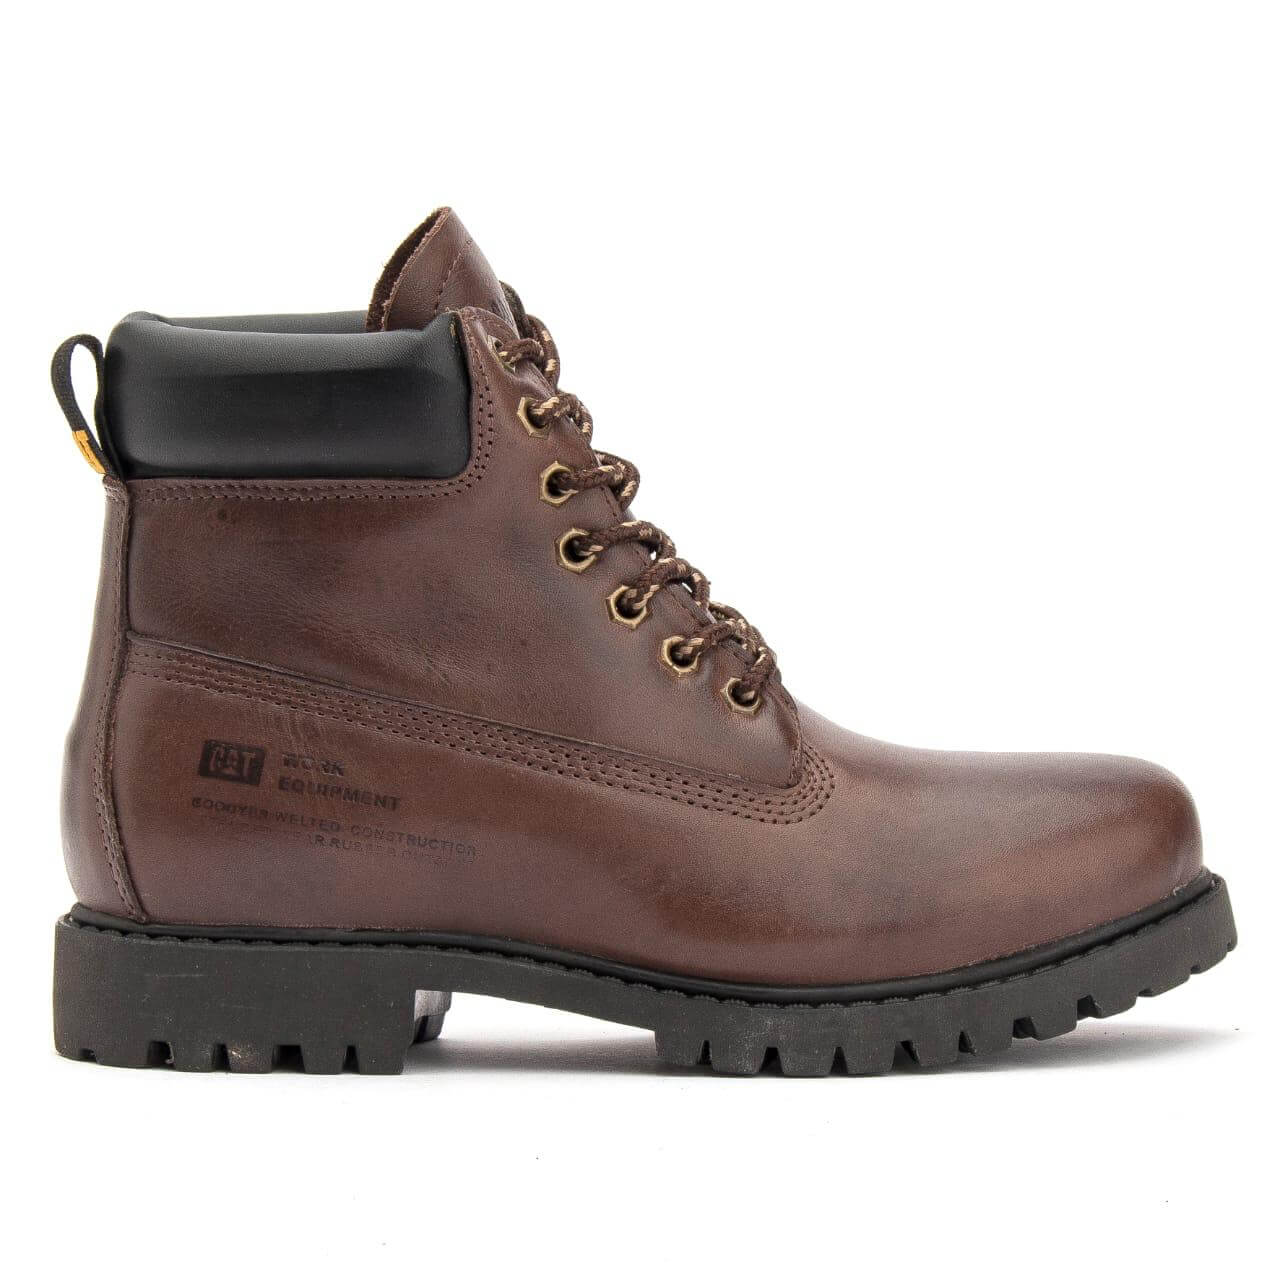 Bota Coturno Caterpillar Masculina 2020 On Boot + Brinde